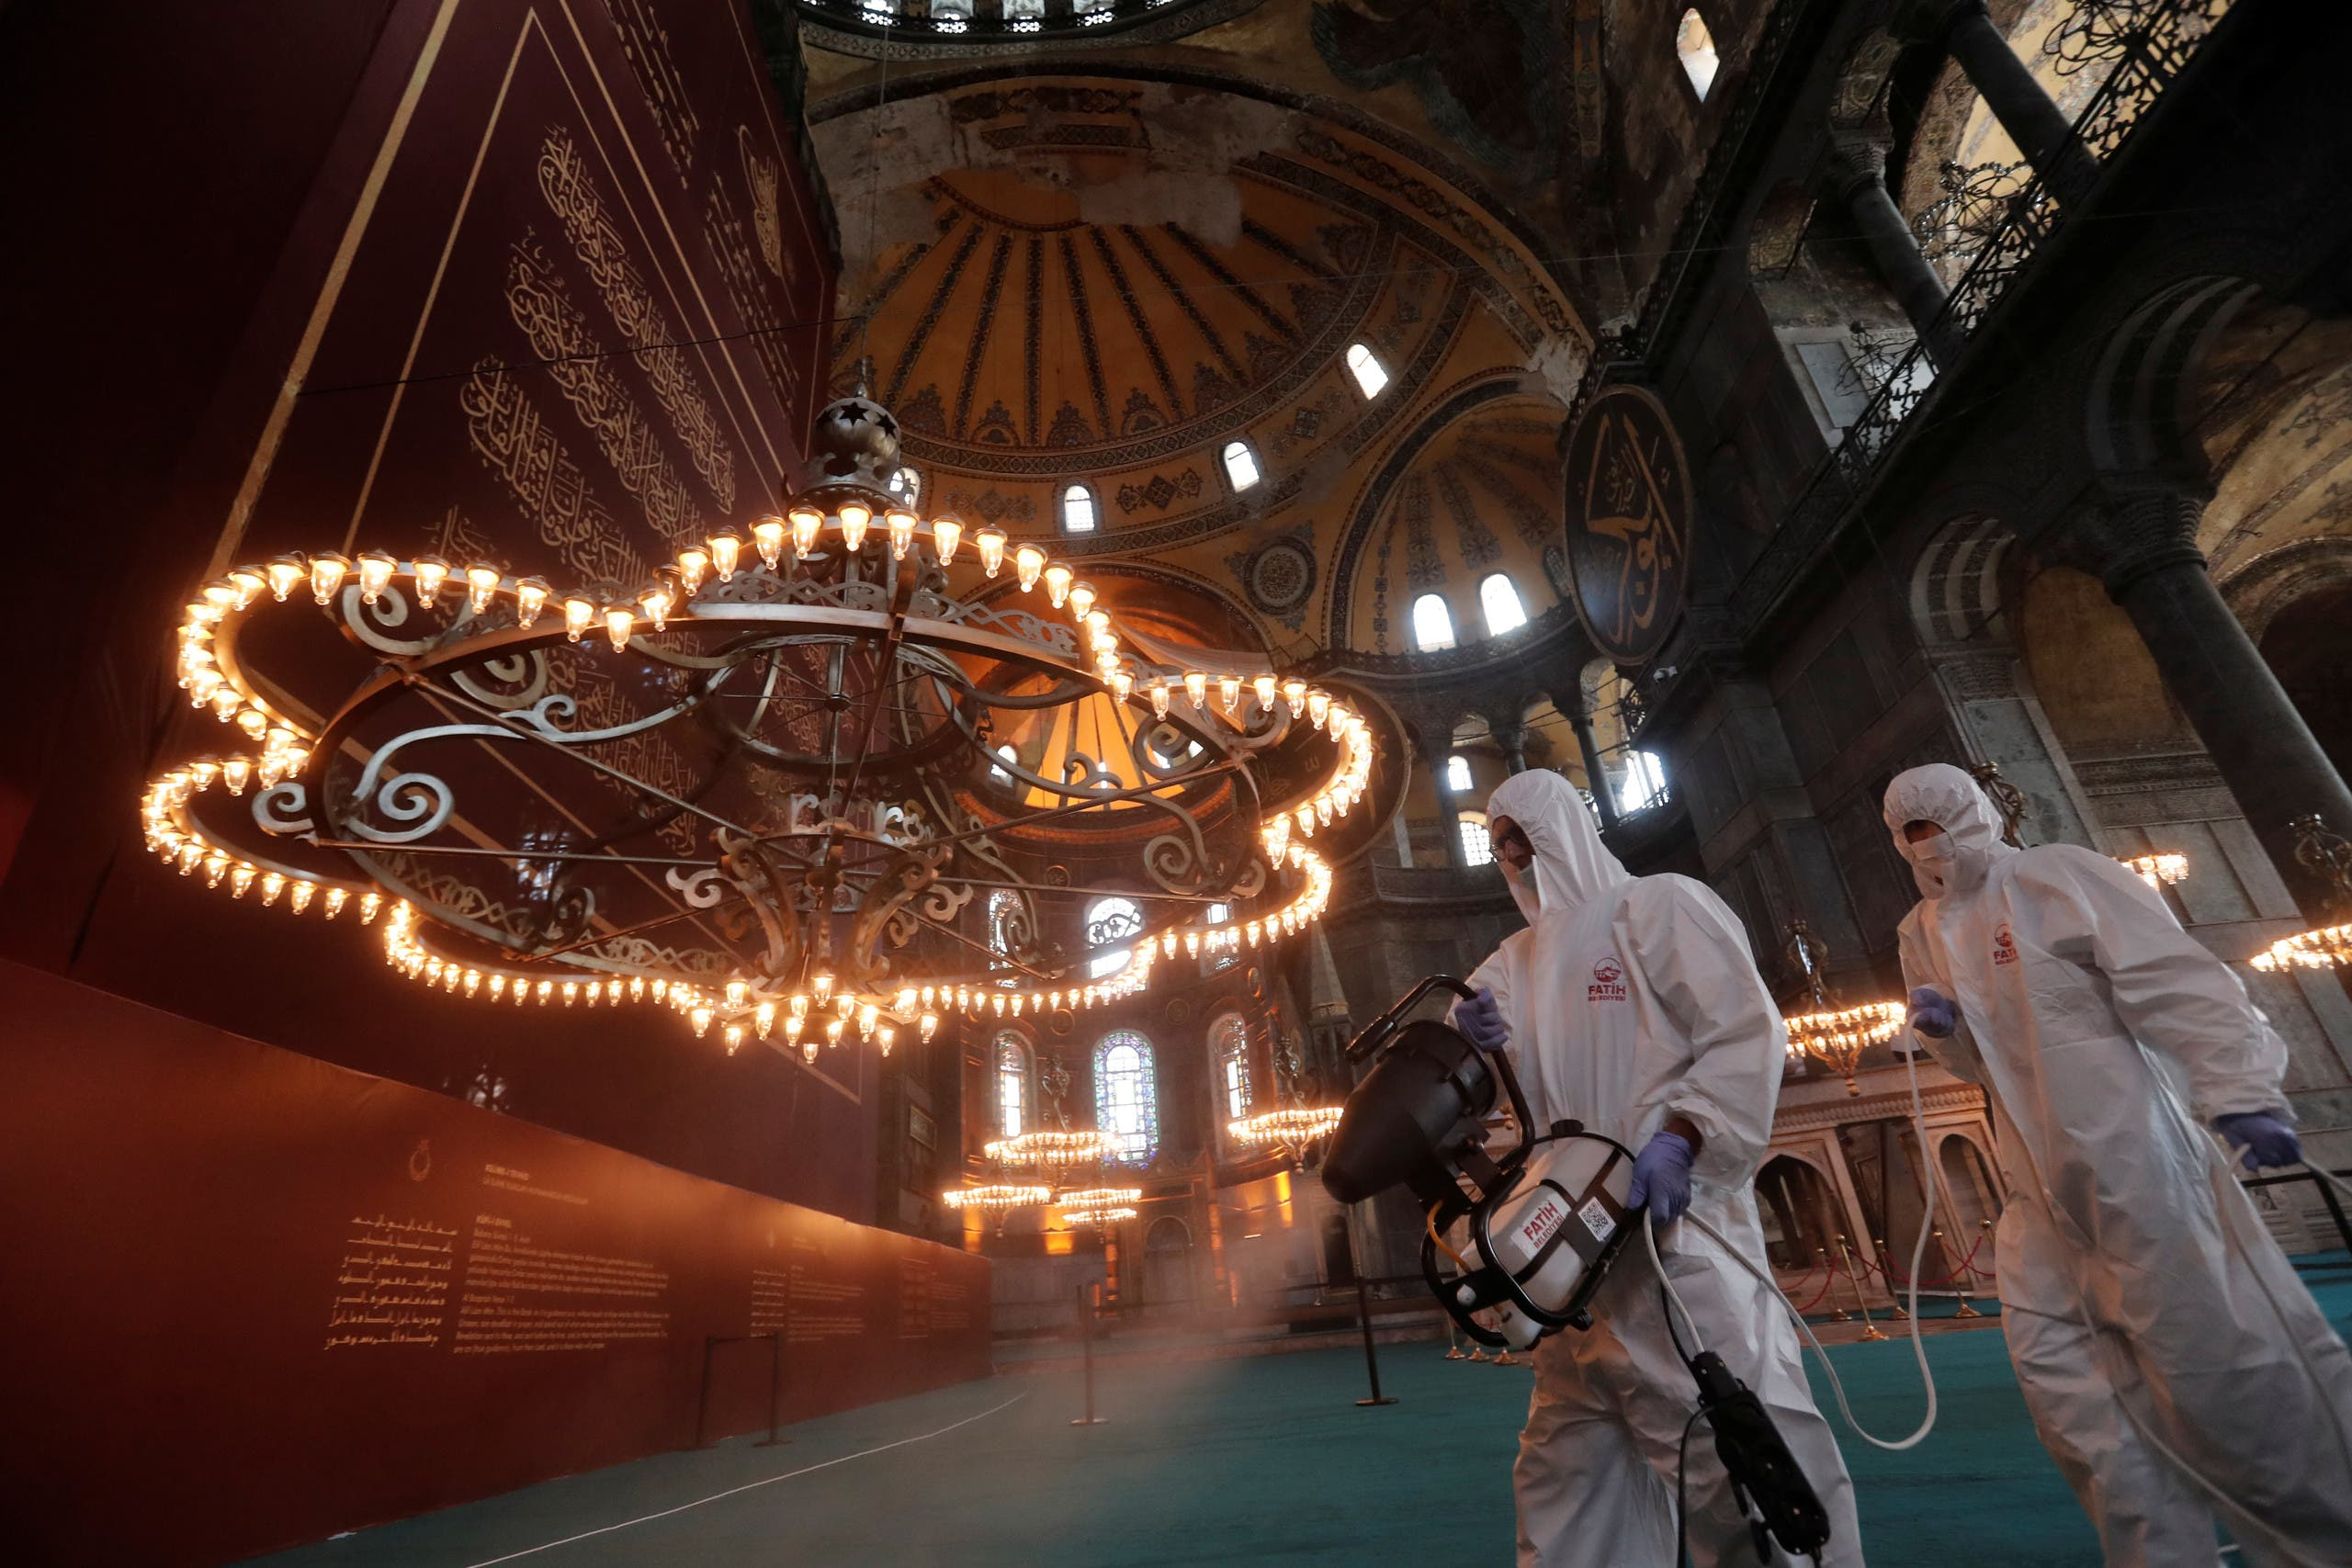 Fatih Municipality workers in protective suits disinfect Hagia Sophia Grand Mosque on the eve of the Muslim festival of Eid al-Adha, to prevent the spread of the coronavirus disease (COVID-19), in Istanbul, Turkey, July 30, 2020. (Reuters)